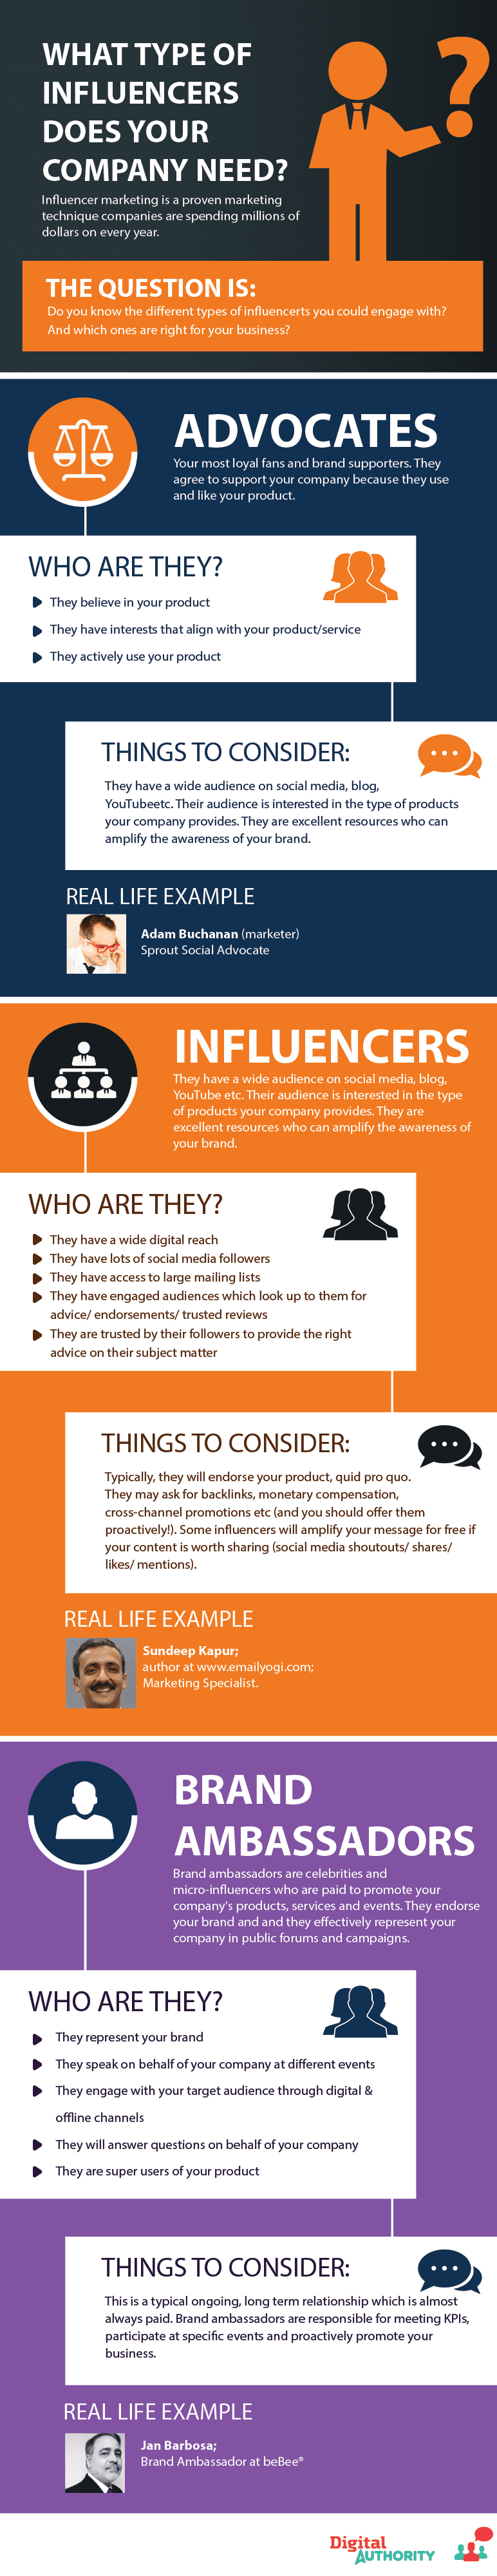 What type of influencers does your company need? 1. Advocates. 2. Influencers 3. Brand ambassadors